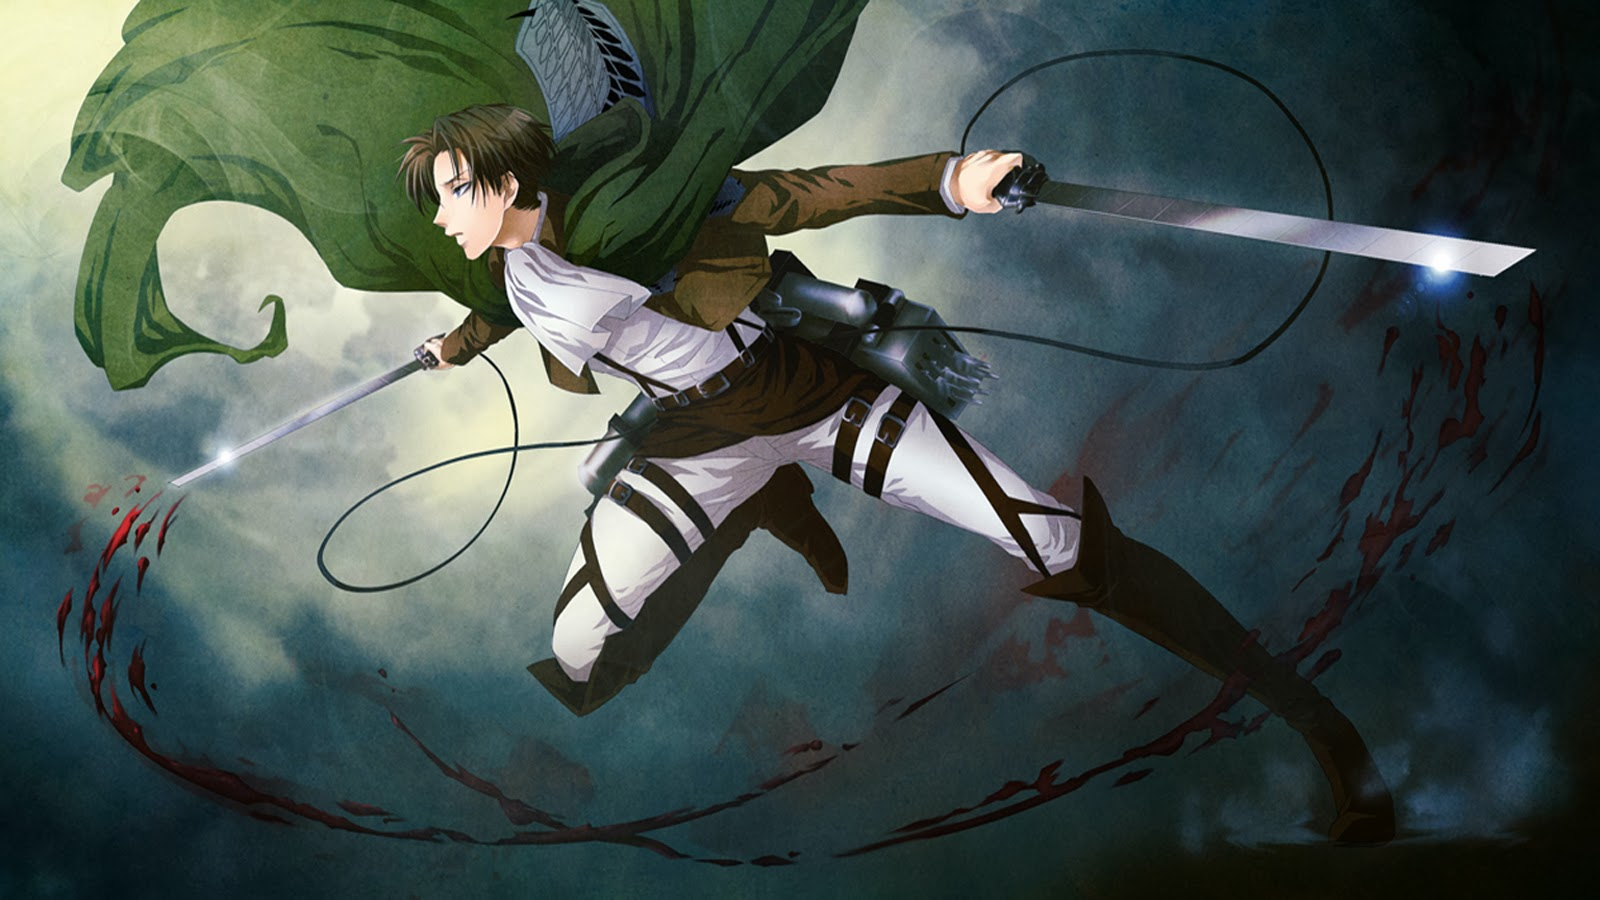 Attack On Titan Iphone Wallpaper Levi levi attack on titan 3d gear b04 1600x900